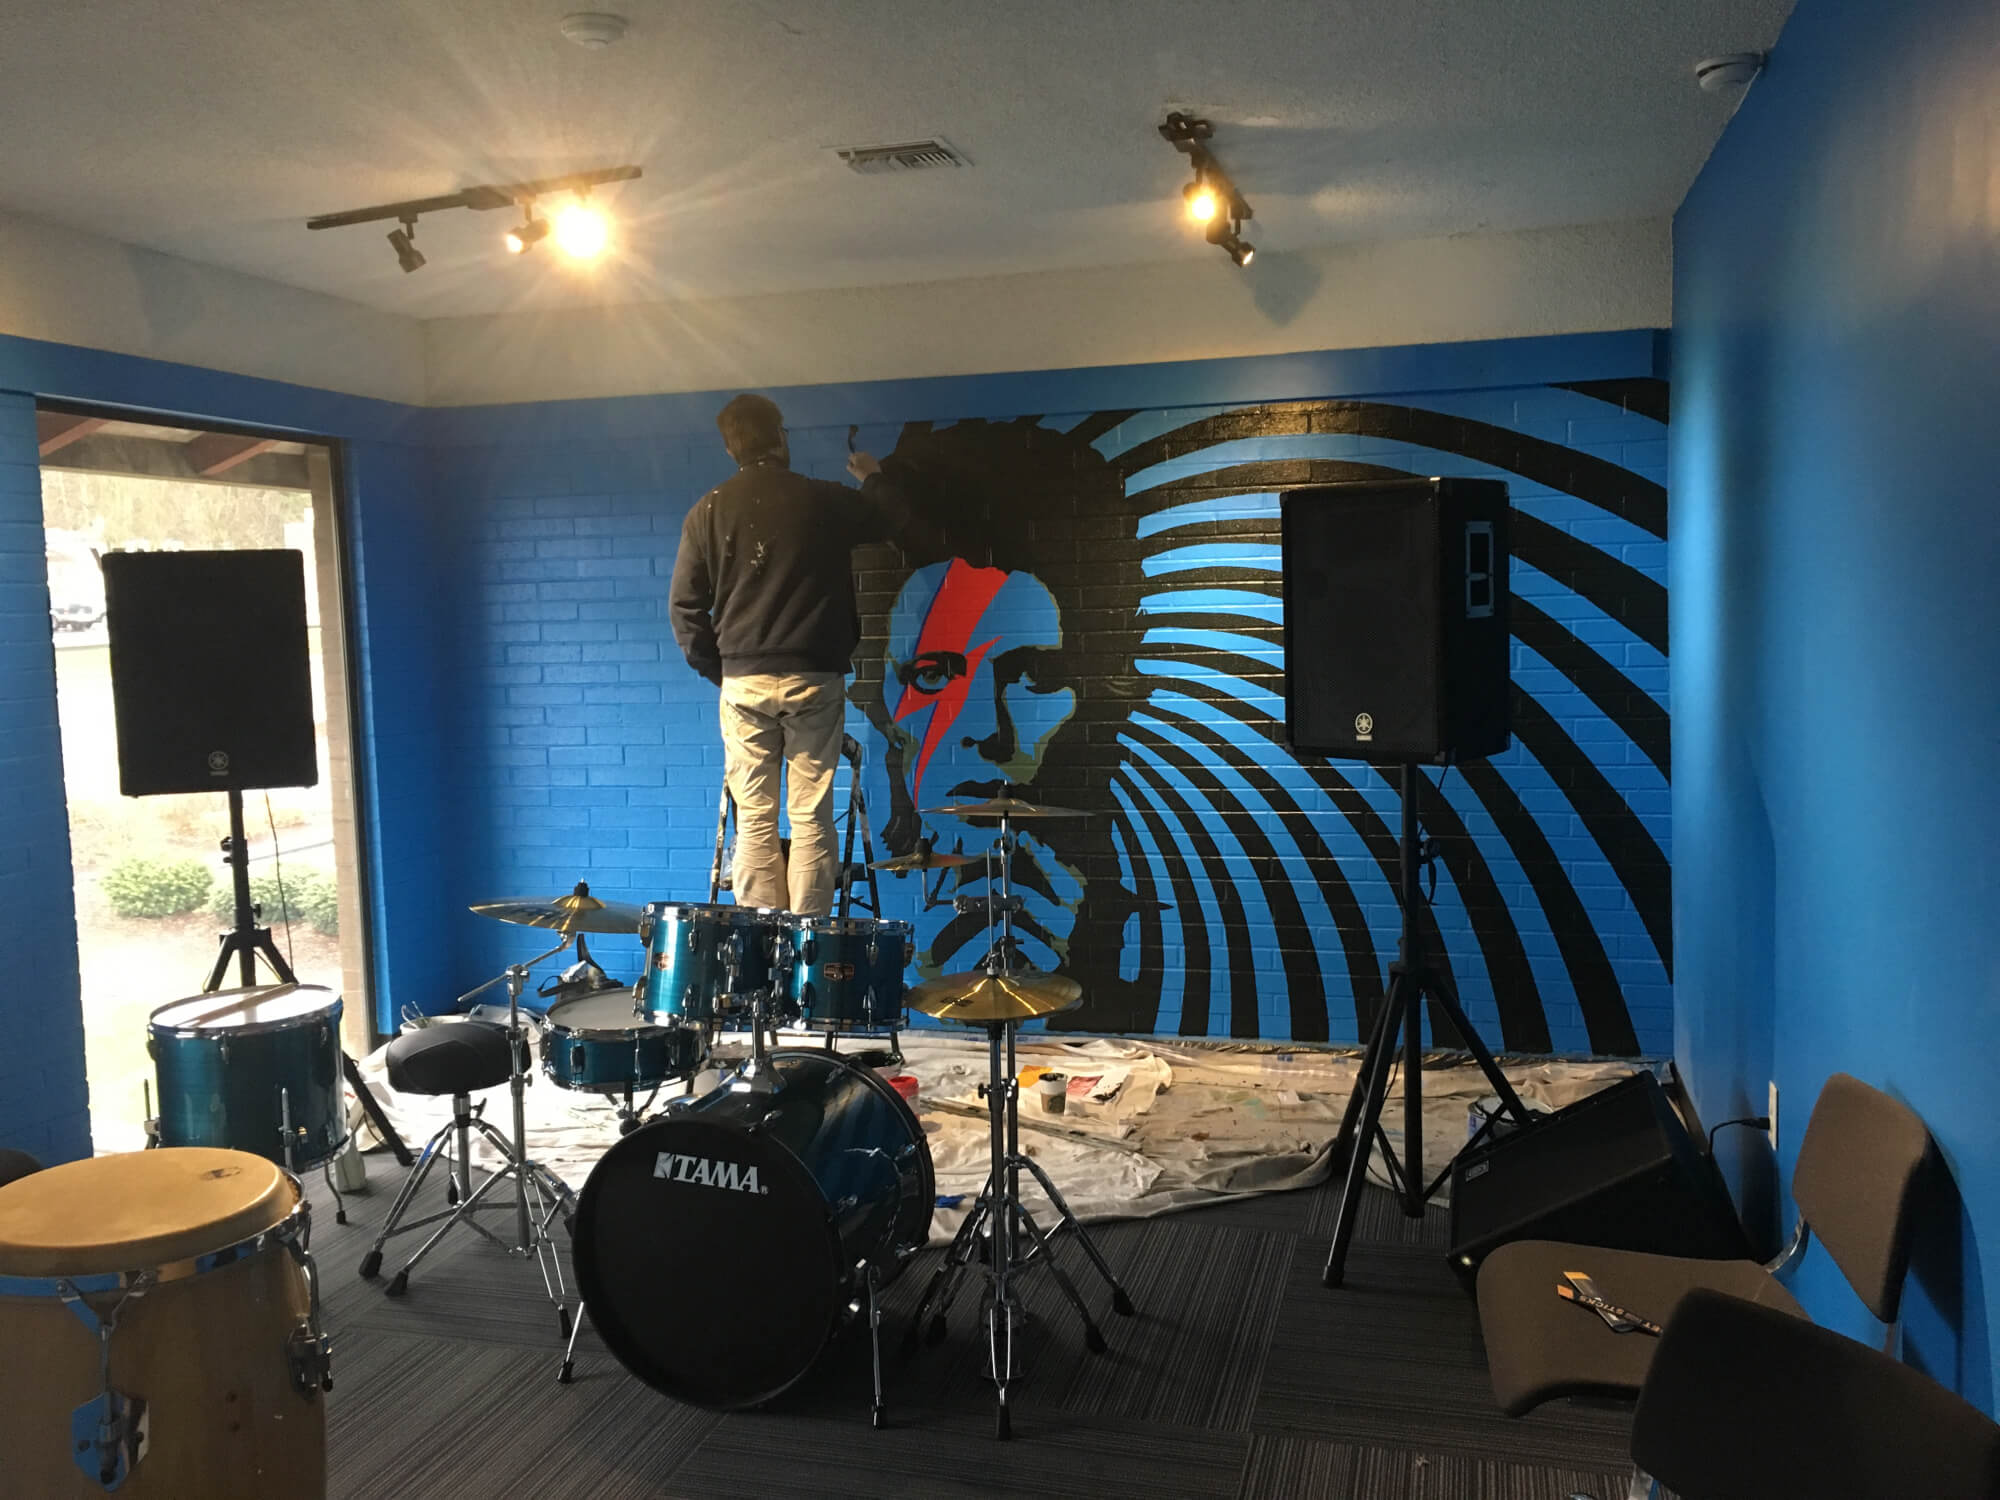 Adding some rehearsal room inspiration! Call [[PHONE]] to schedule a tour of our space in Lynnwood.